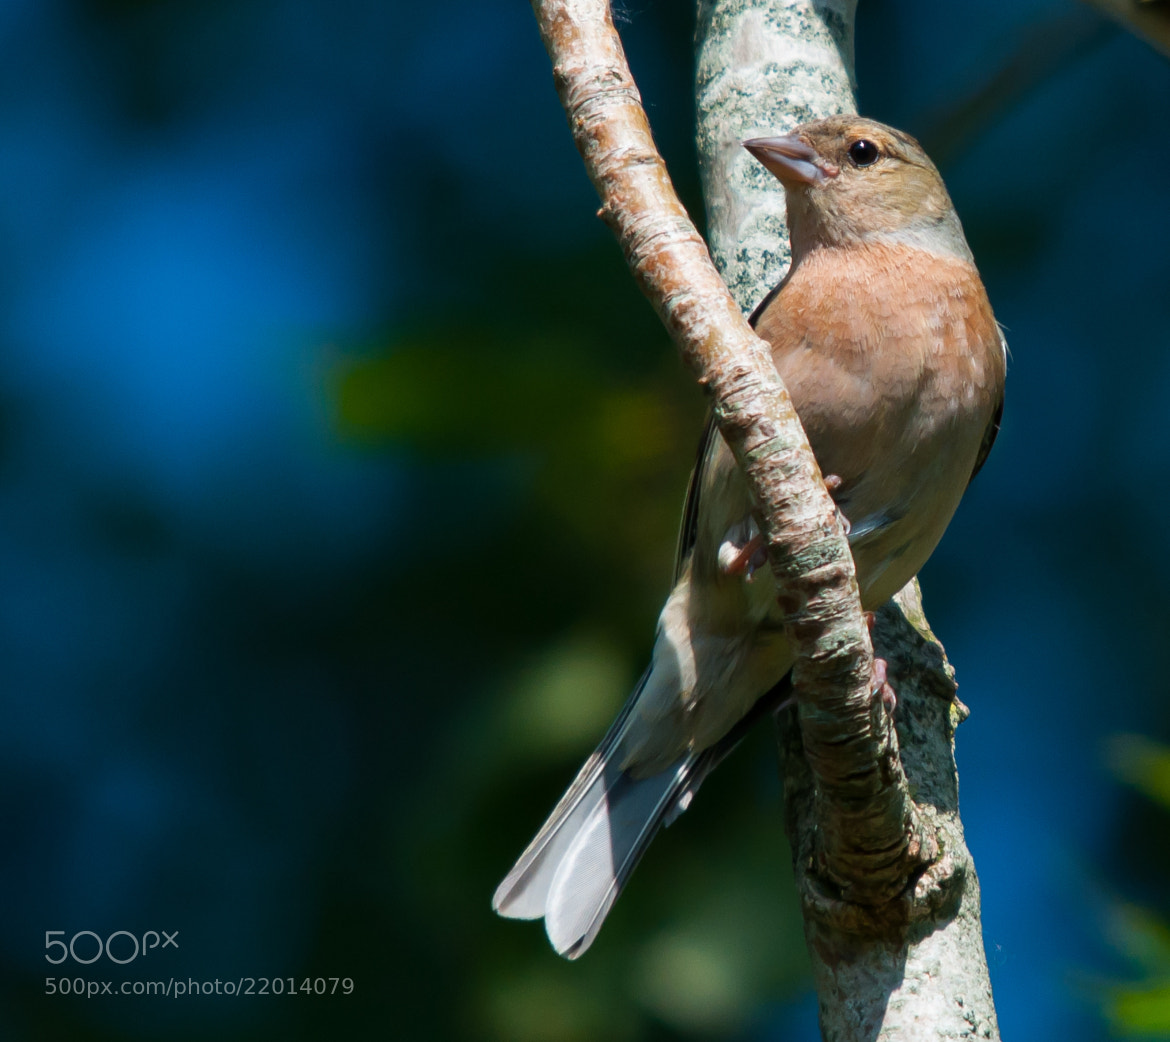 Photograph Chaffinch by Phil Scarlett on 500px